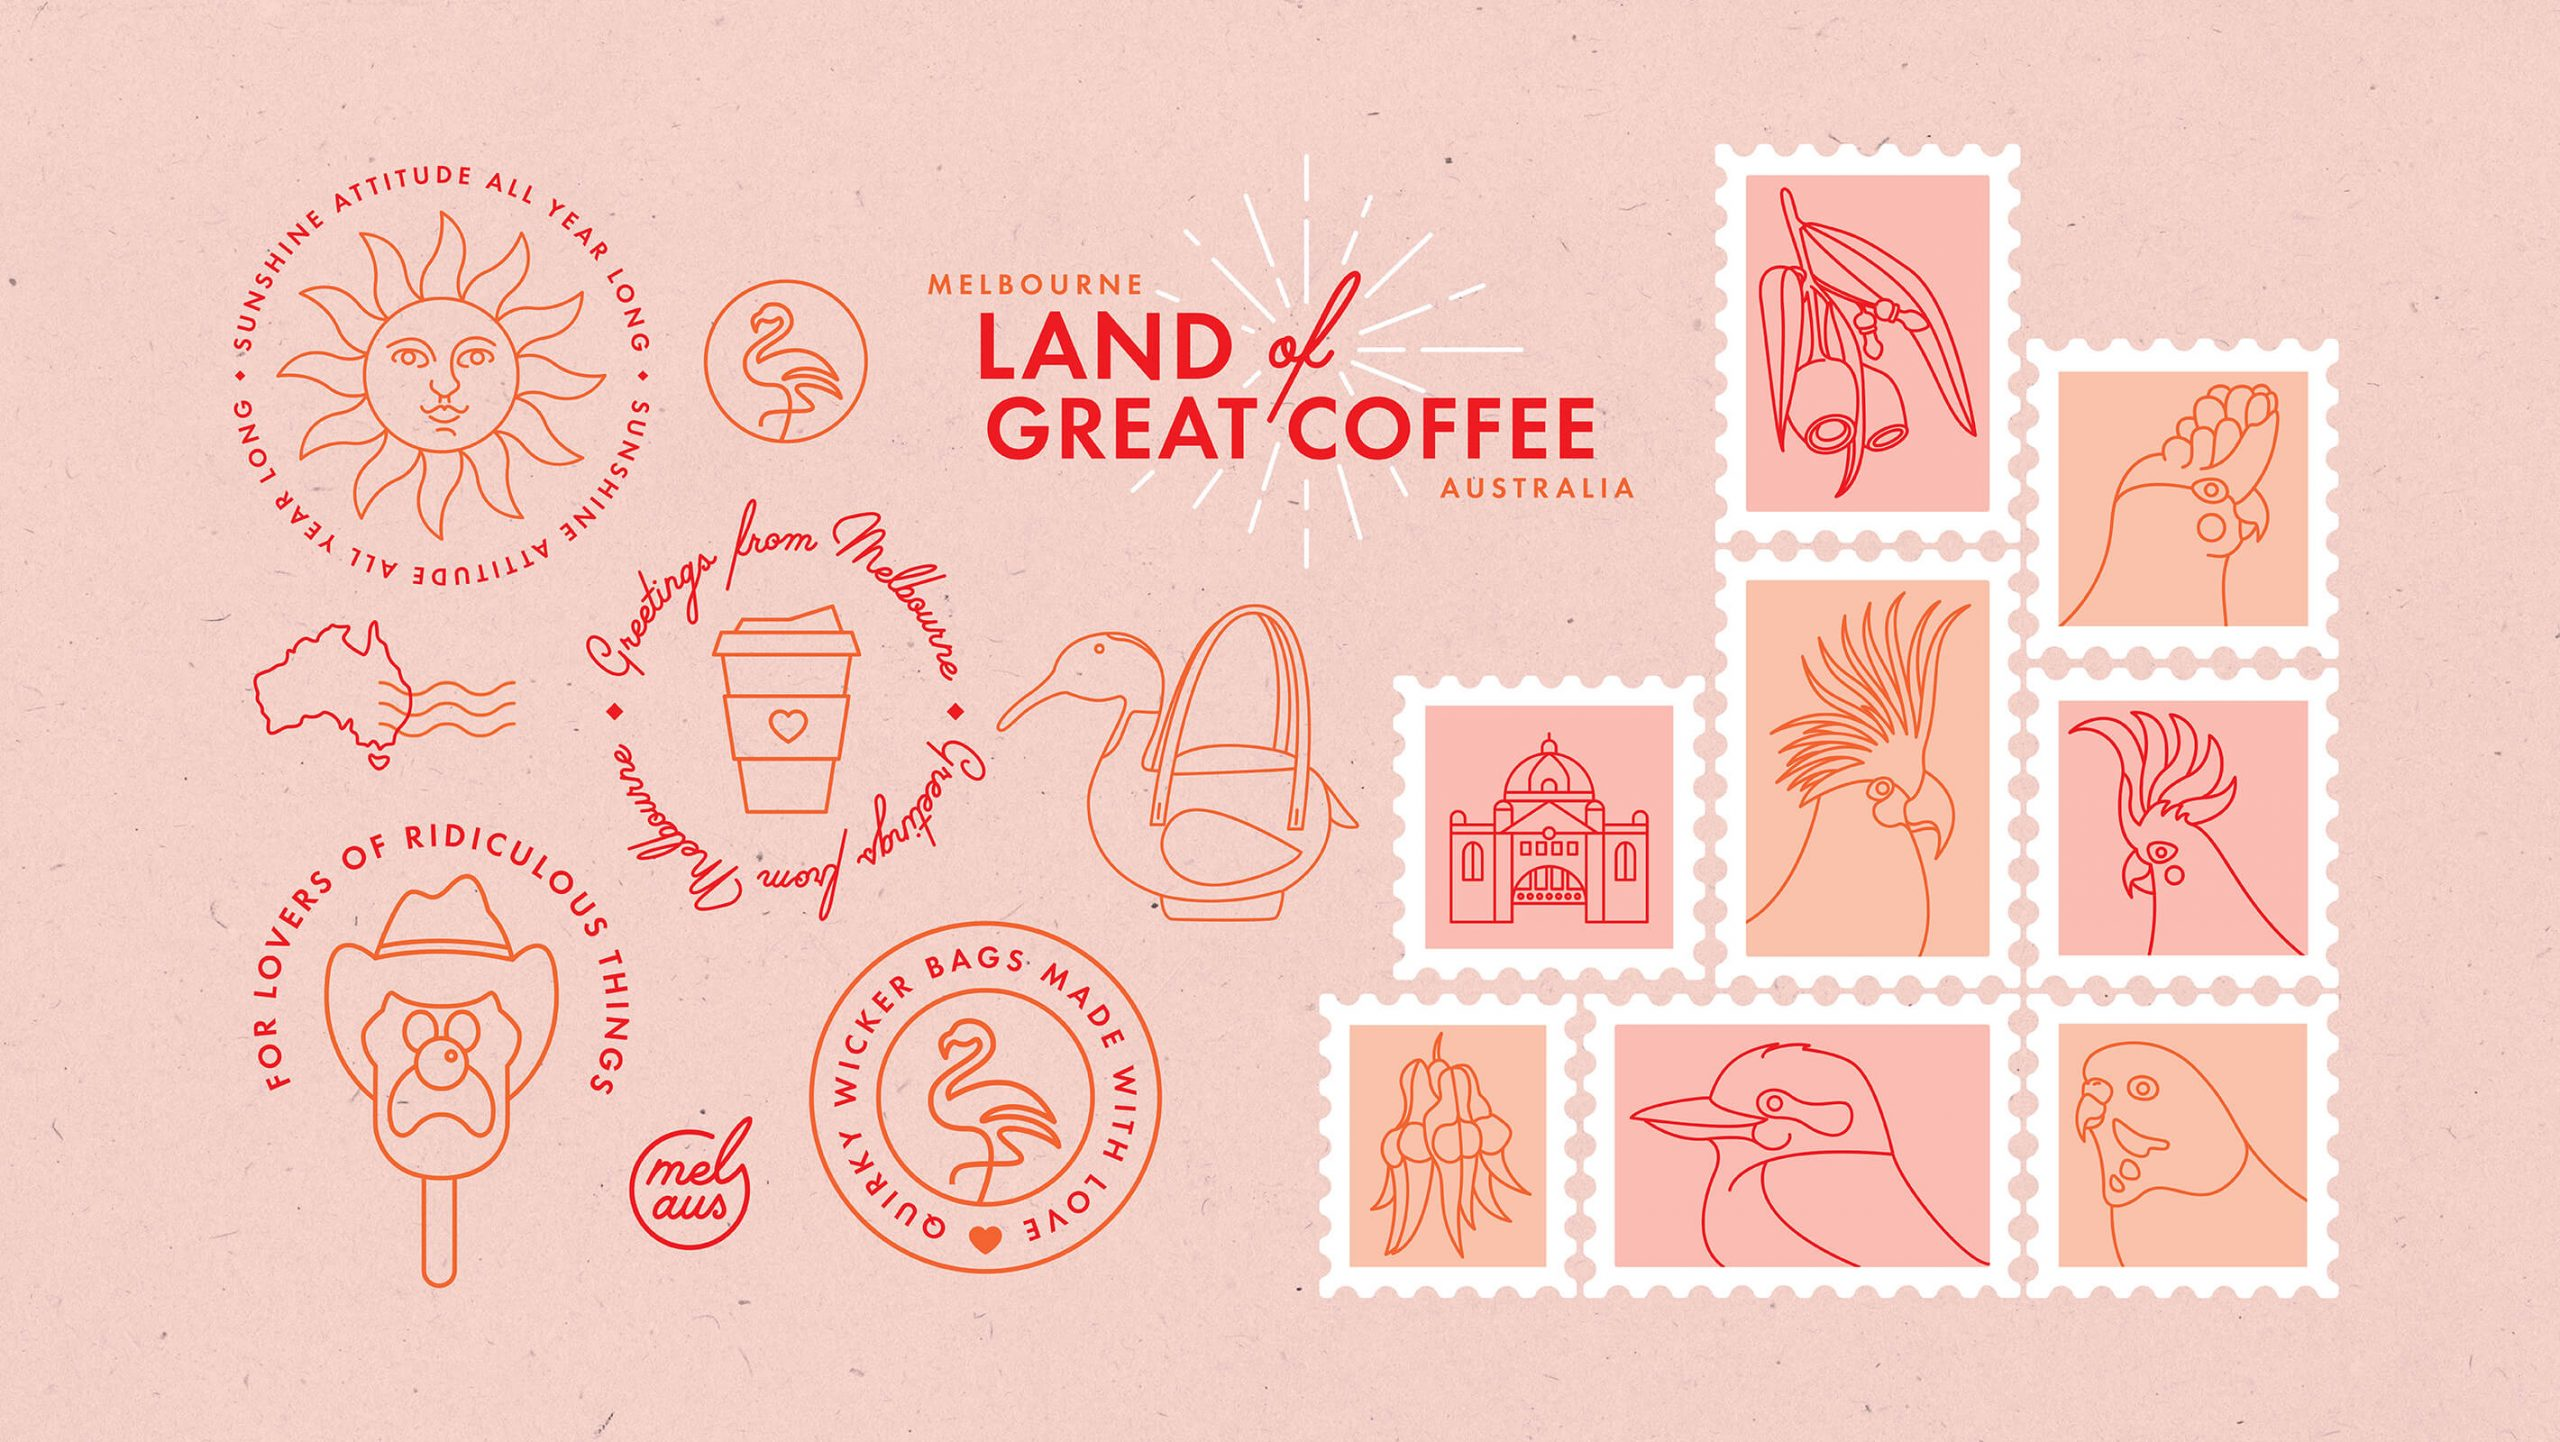 Pink bakcground has range of Wicker Darling illustrations in red and orange tone. there are postage stamps, icons with Melbourne Australia references and Australiana iconography.